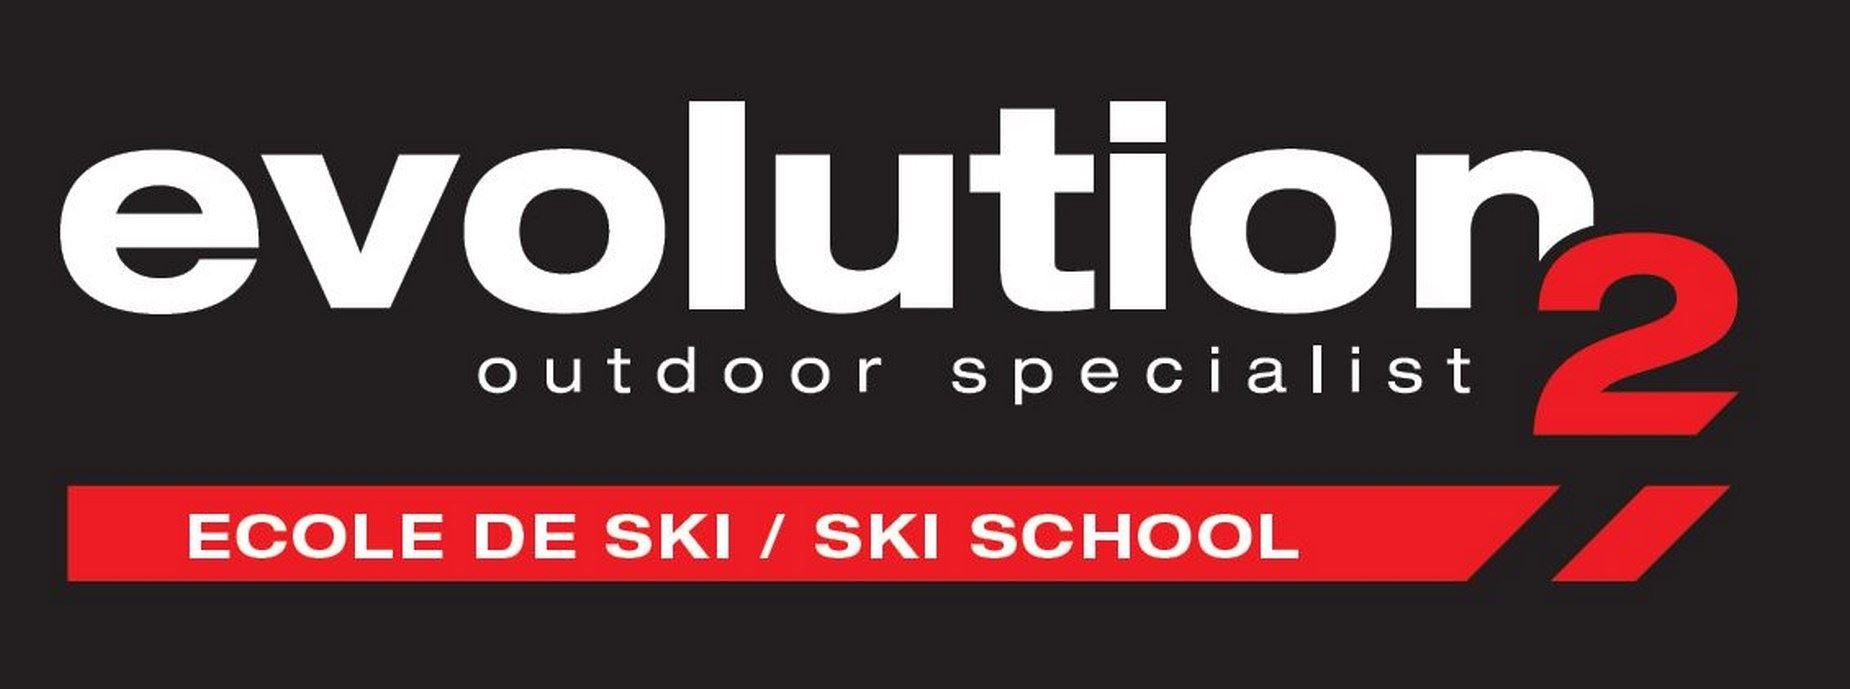 OFF PIST SKI & SNOWBOARD ADULTS TRAINING